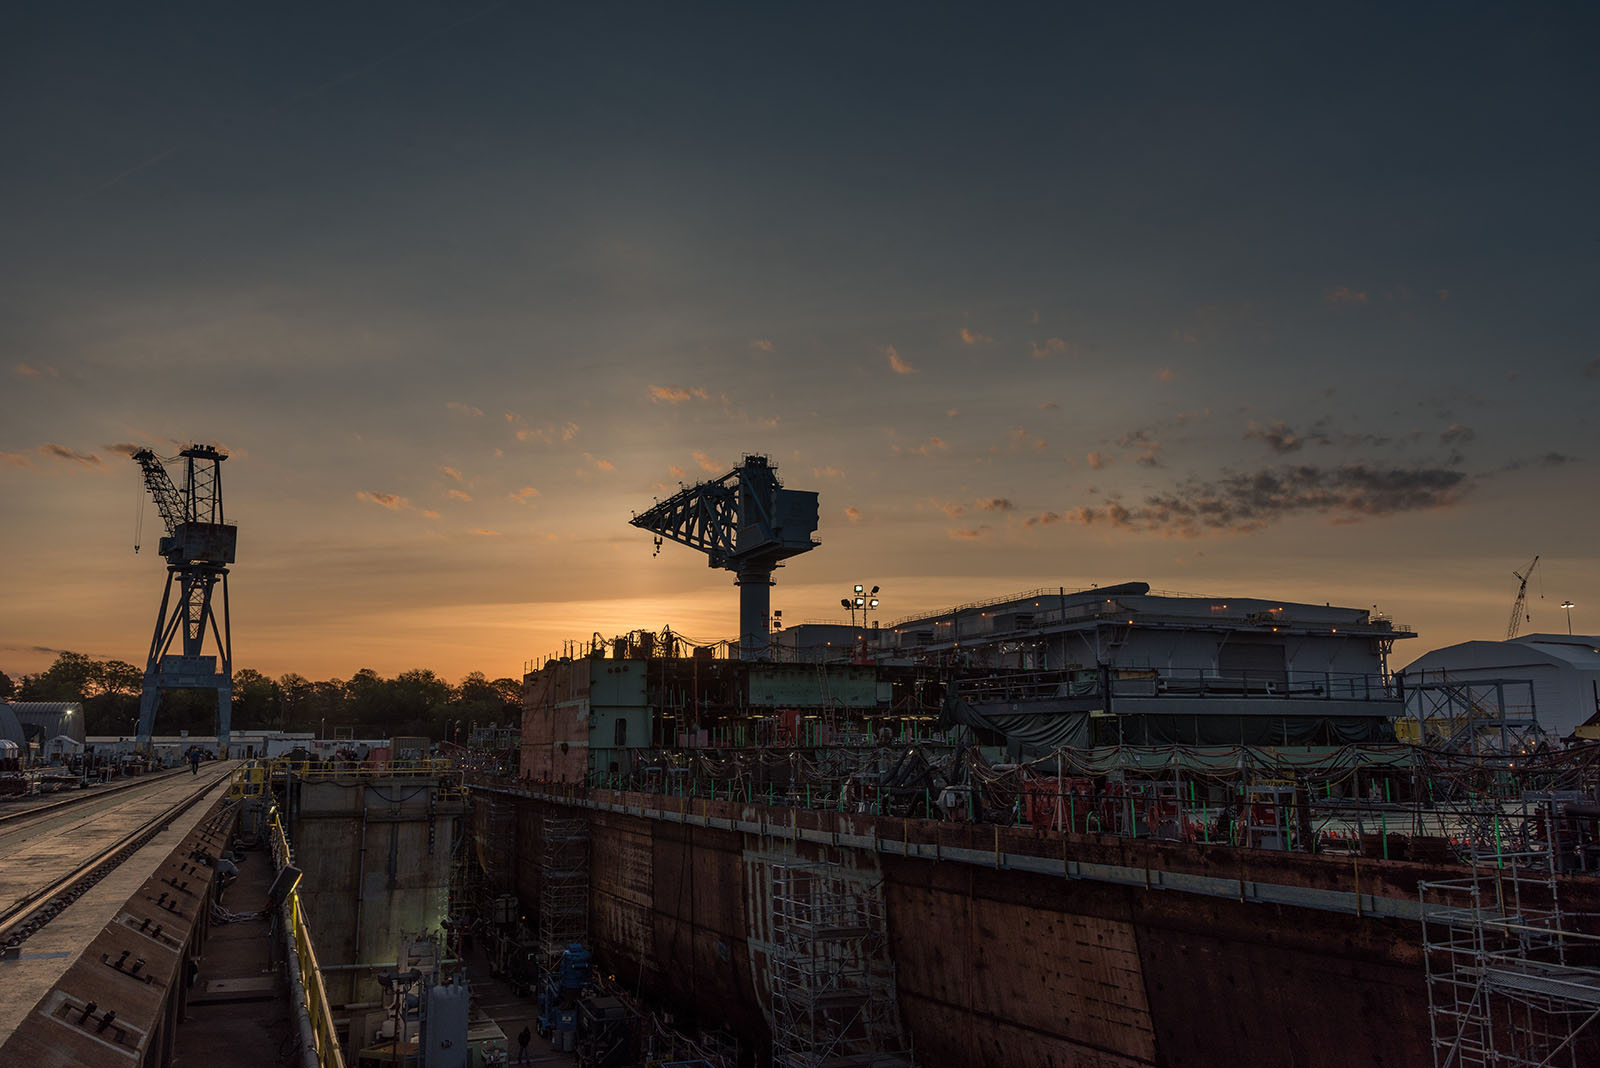 The sun rises over Dry Dock 12 and John F. Kennedy (CVN 79) construction.